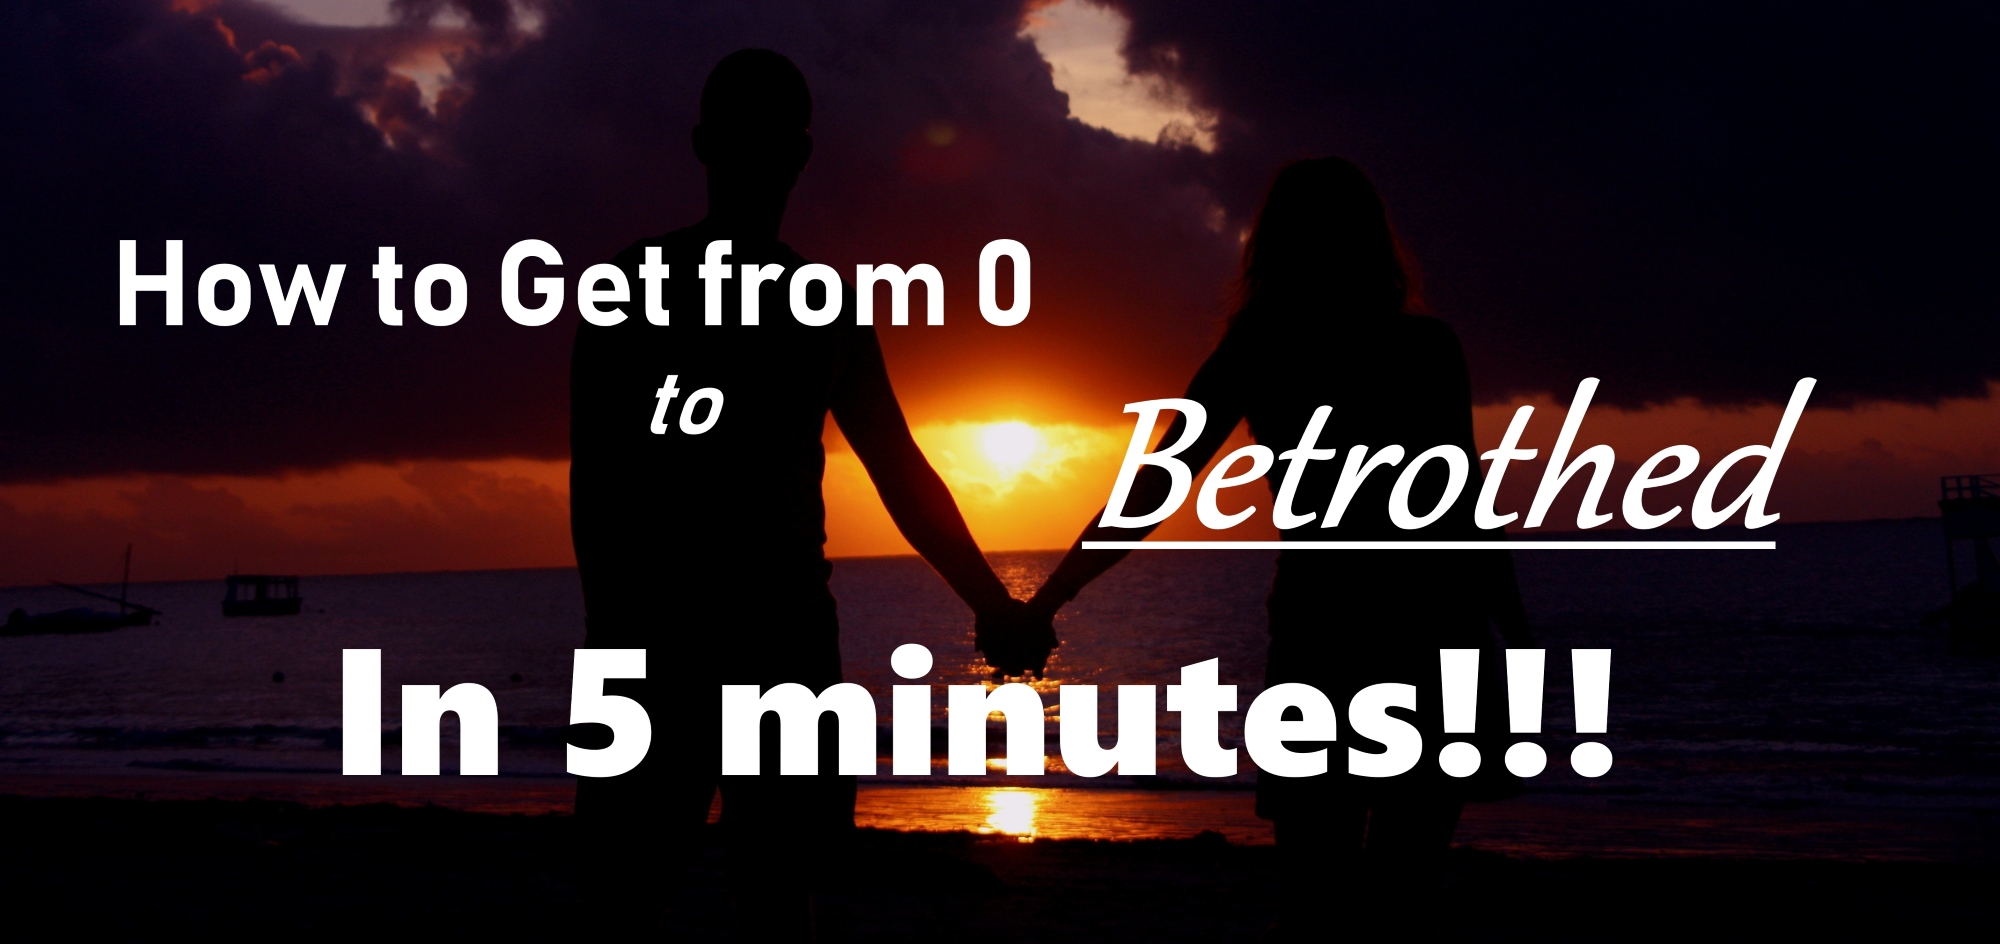 How to get from 0 to Betrothed in 5 minutes!